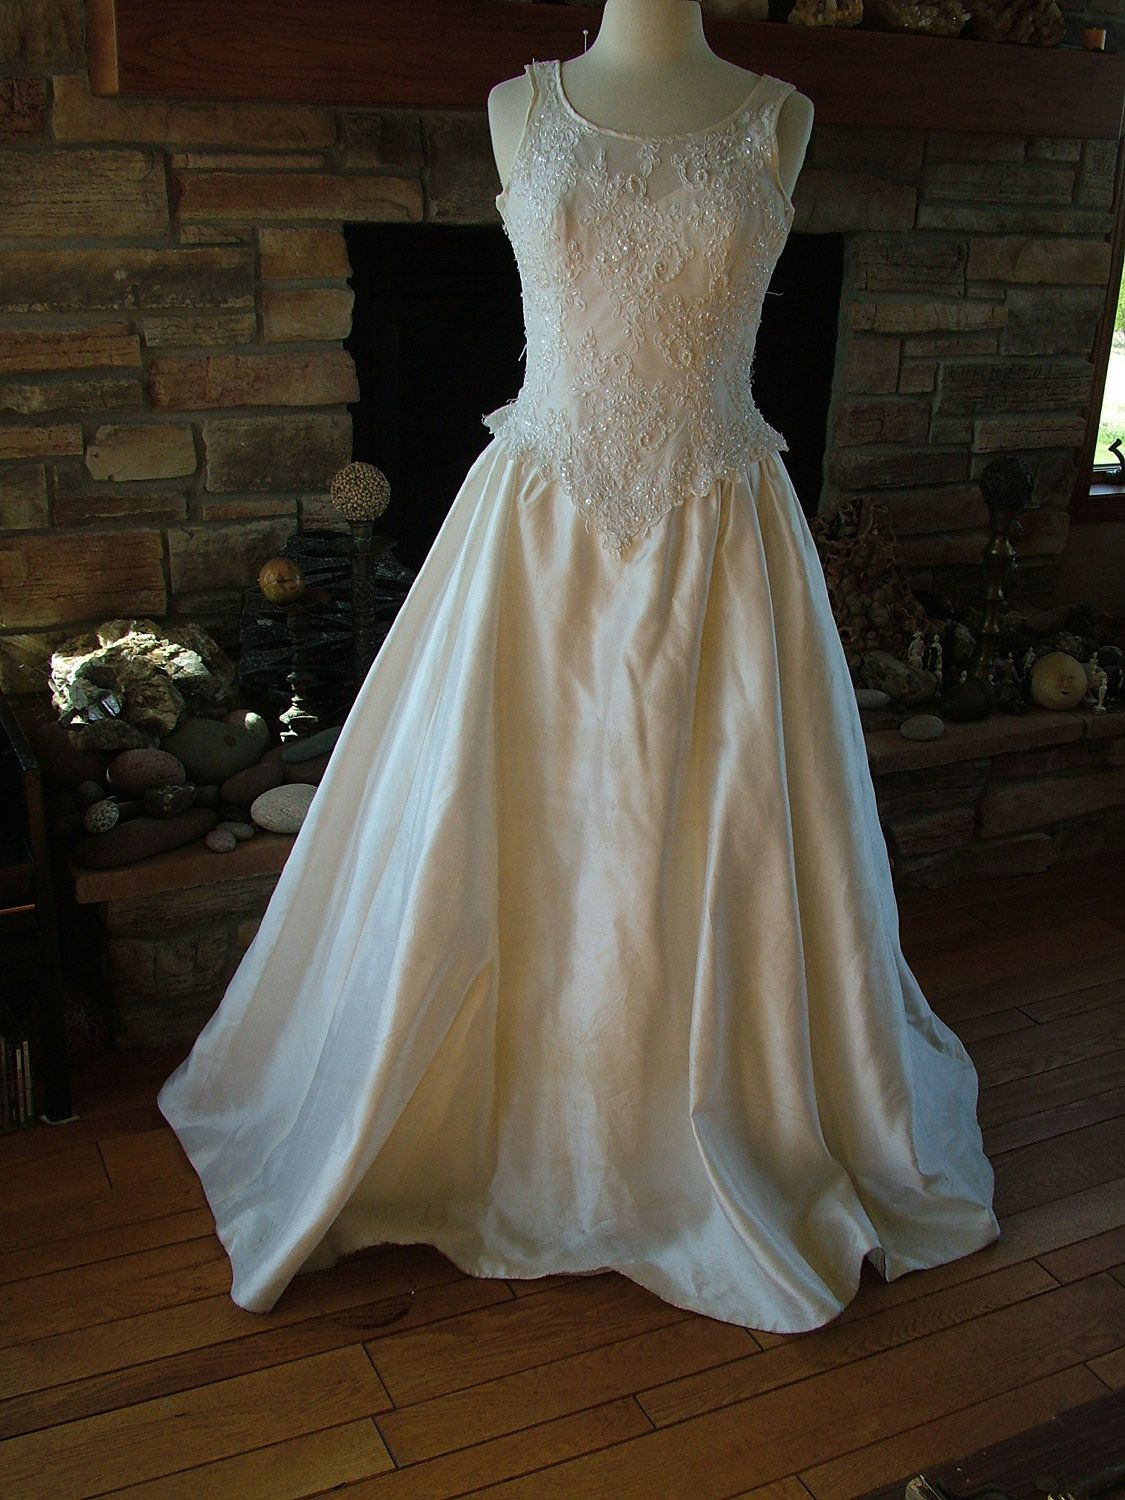 Wedding dress 1990s gloria vanderbilt designer ball gown for Gloria vanderbilt wedding dress